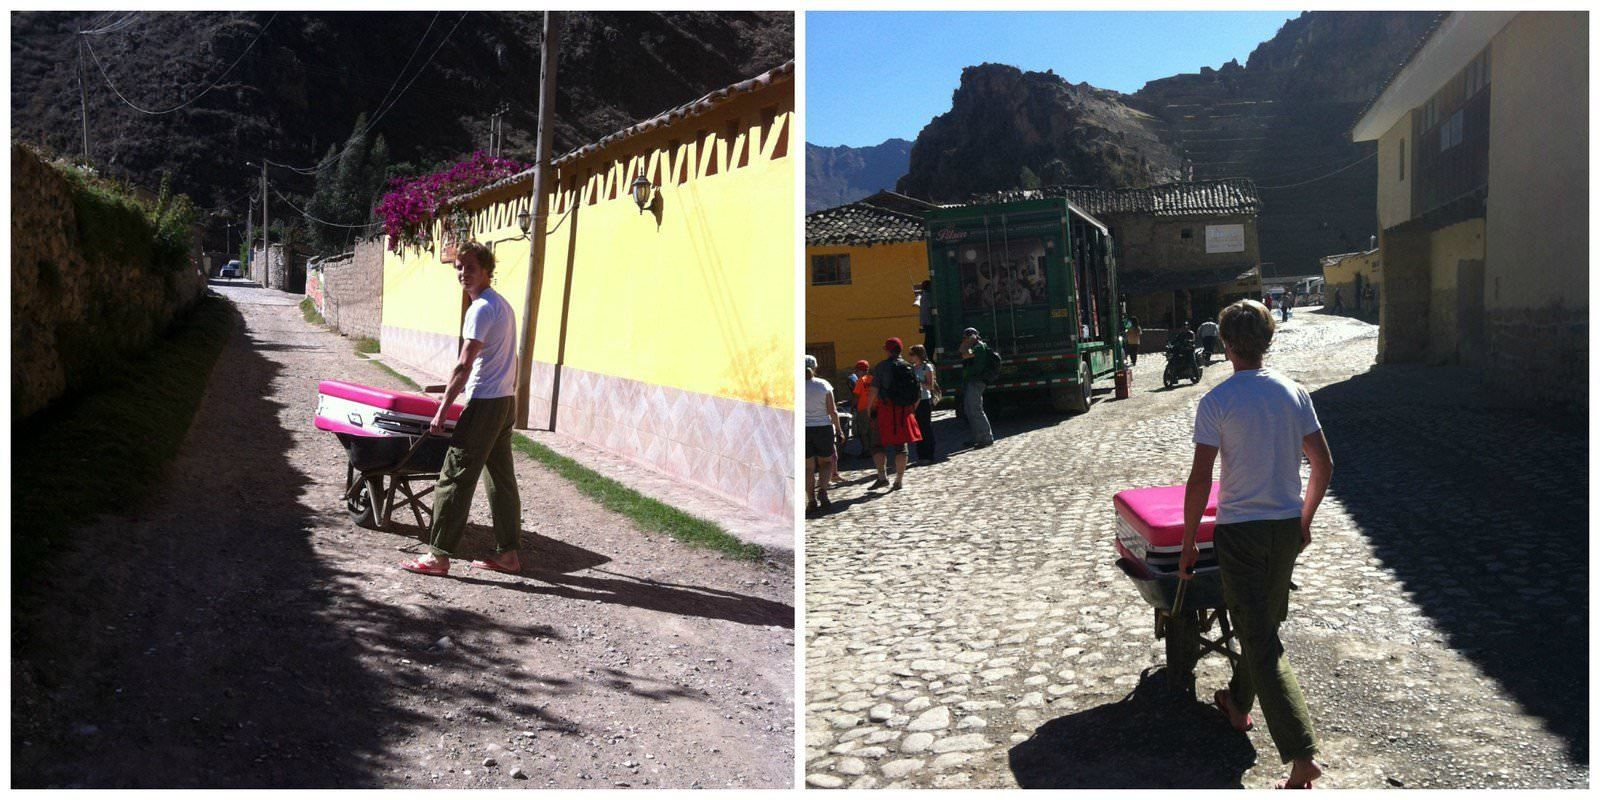 massage-bed-pushing-the-wheelbarrow-in-ollaytantambo-peru